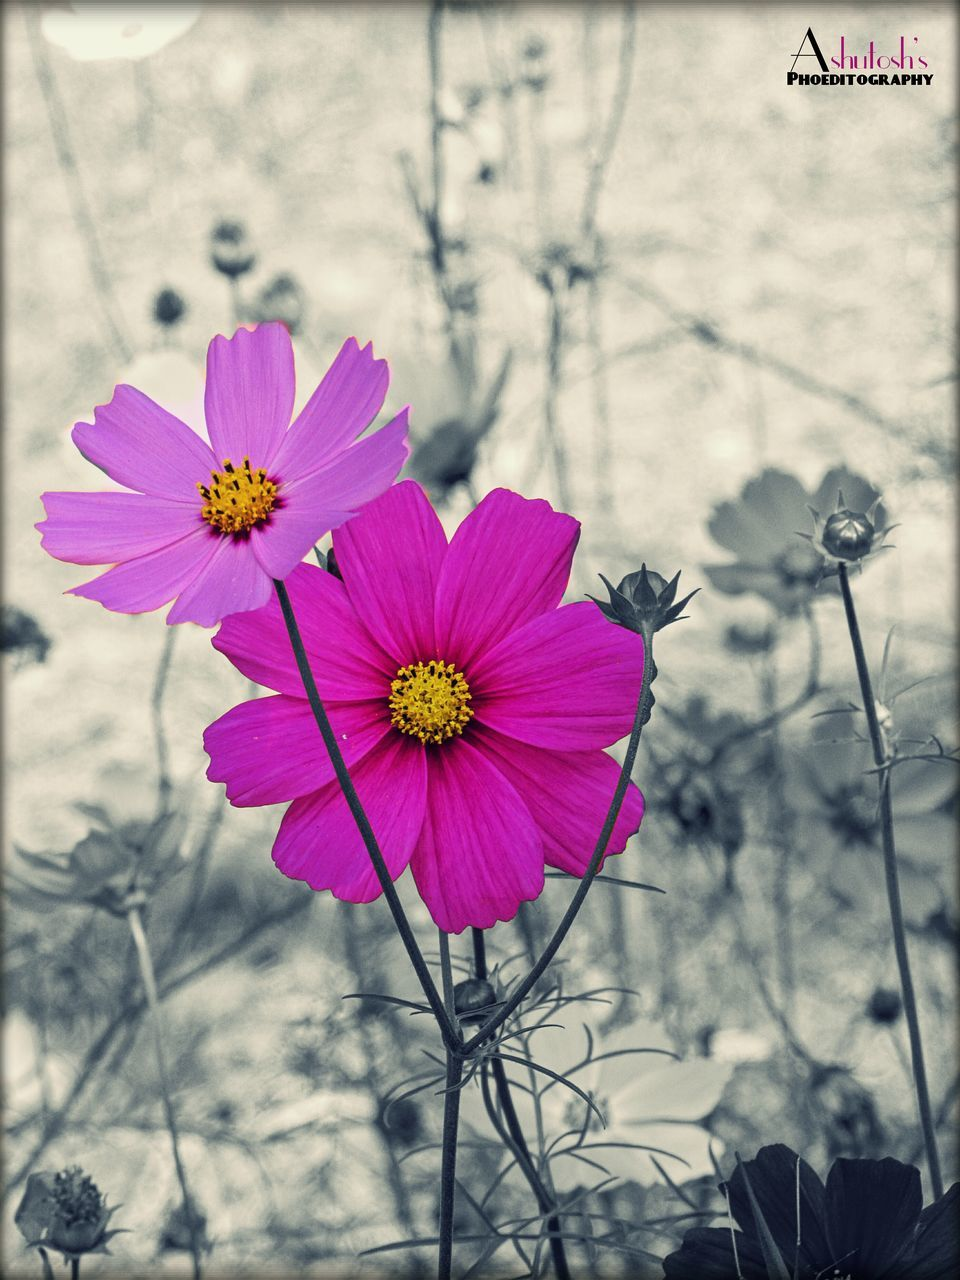 flower, petal, fragility, flower head, freshness, beauty in nature, pink color, plant, nature, growth, blooming, day, focus on foreground, no people, outdoors, cosmos flower, close-up, osteospermum, eastern purple coneflower